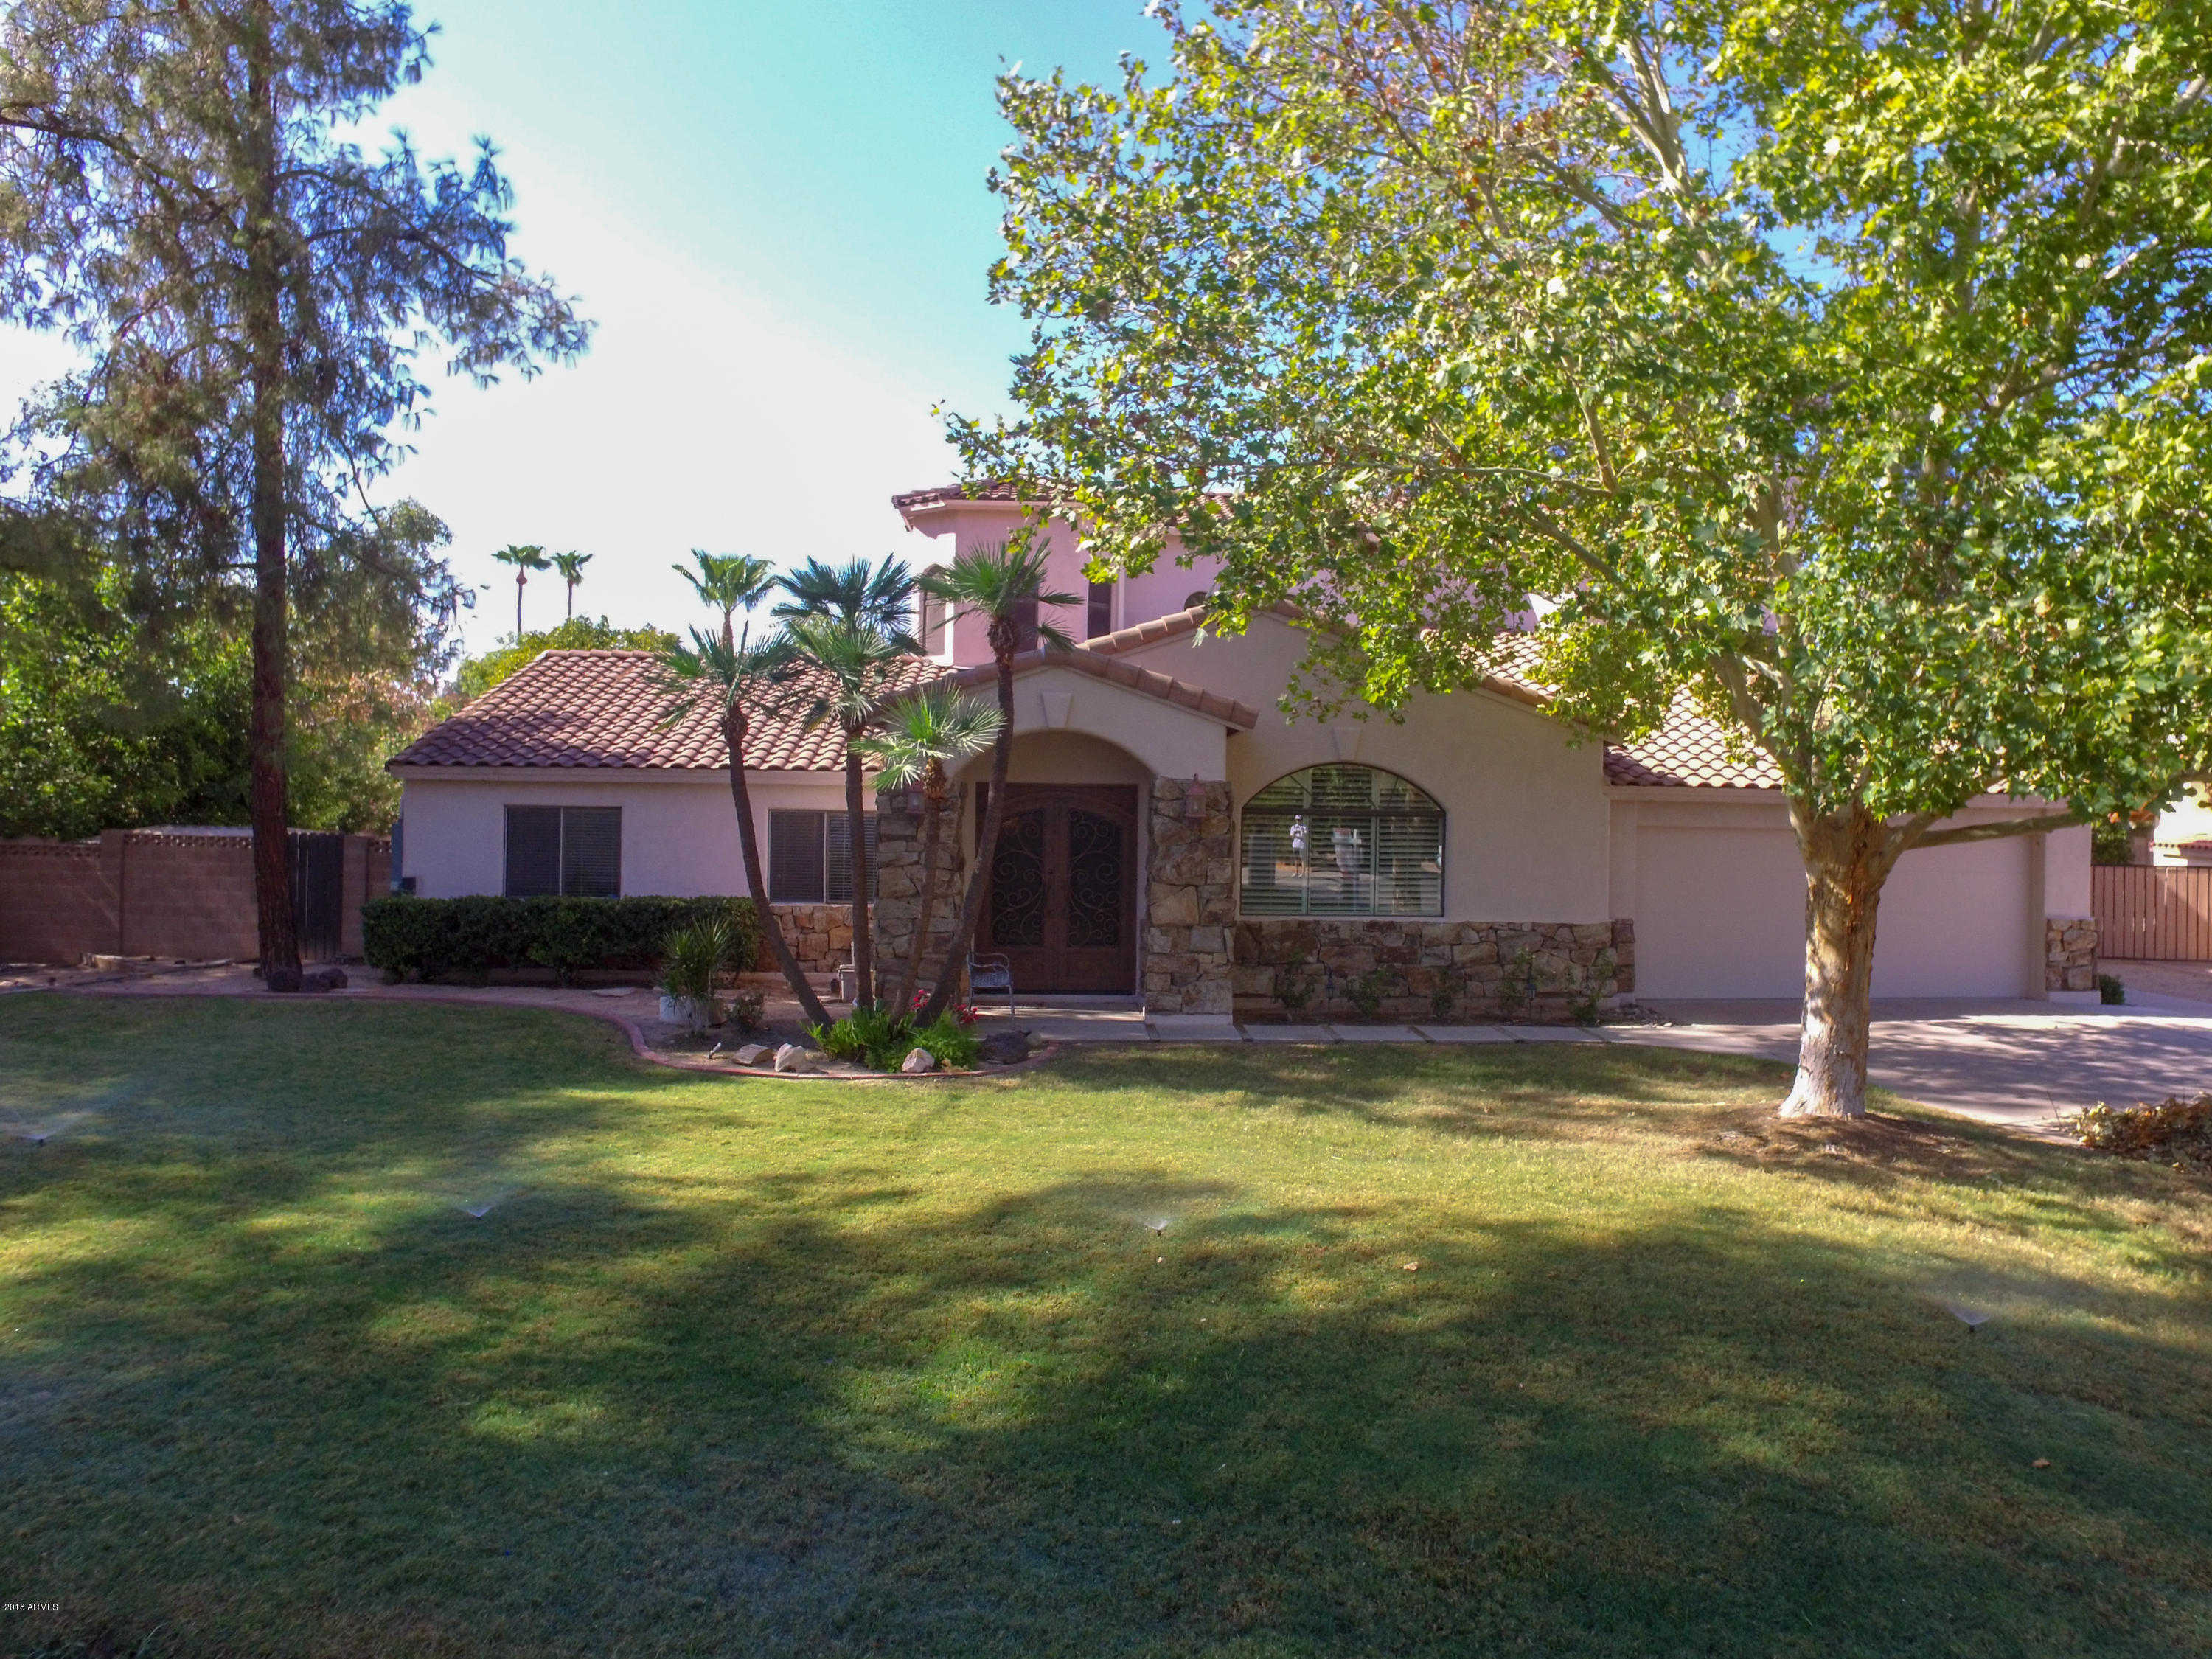 Homes For Sale In Moon Valley Team Clayton Real Estate